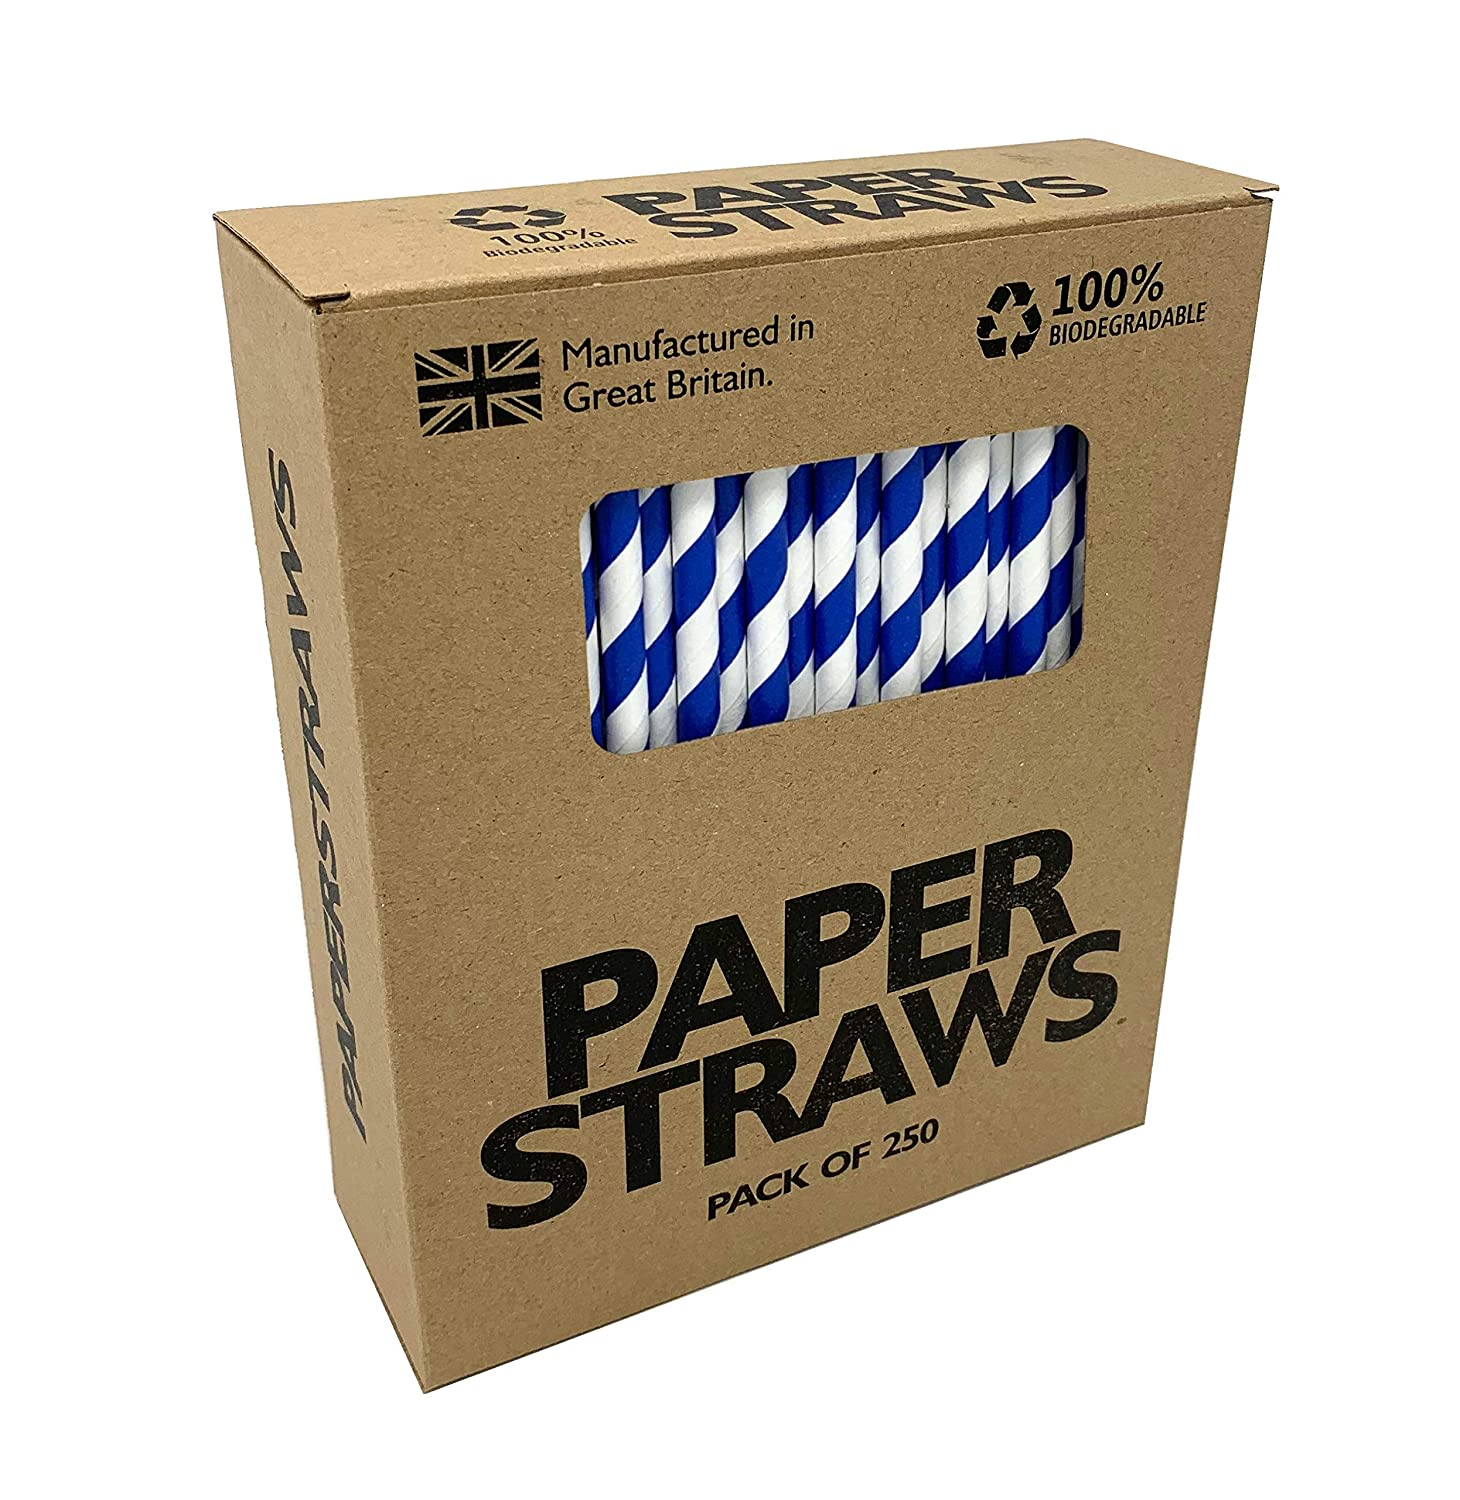 Cold Drinks /& Juices Suitable for All Occasions Including Birthdays /& Parties Pack of 250 Solid Black Paper Straws - British Made Biodegradable Paper Drinking Straws Ideal for Cocktails